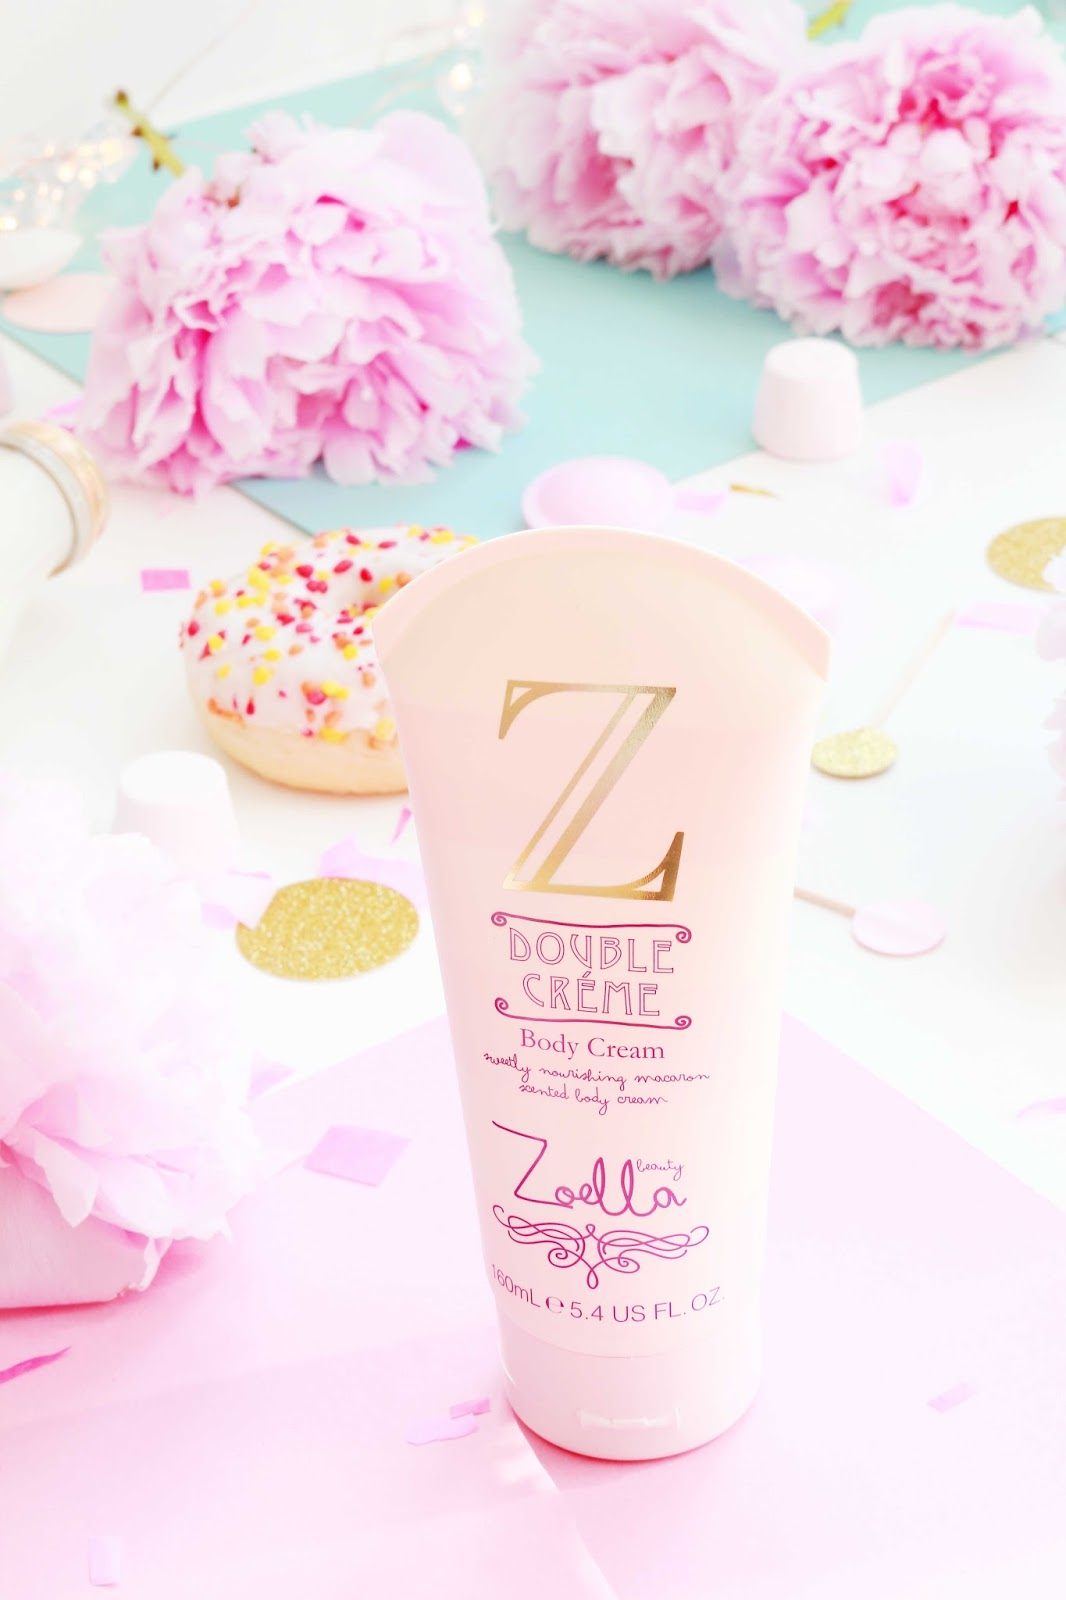 Beauty, Zoella Beauty, Drugstore, Zoella, Feel Unique, Zoe Sugg, Zoella Beauty range, Zoella Sweet Inspirations, Youtuber,